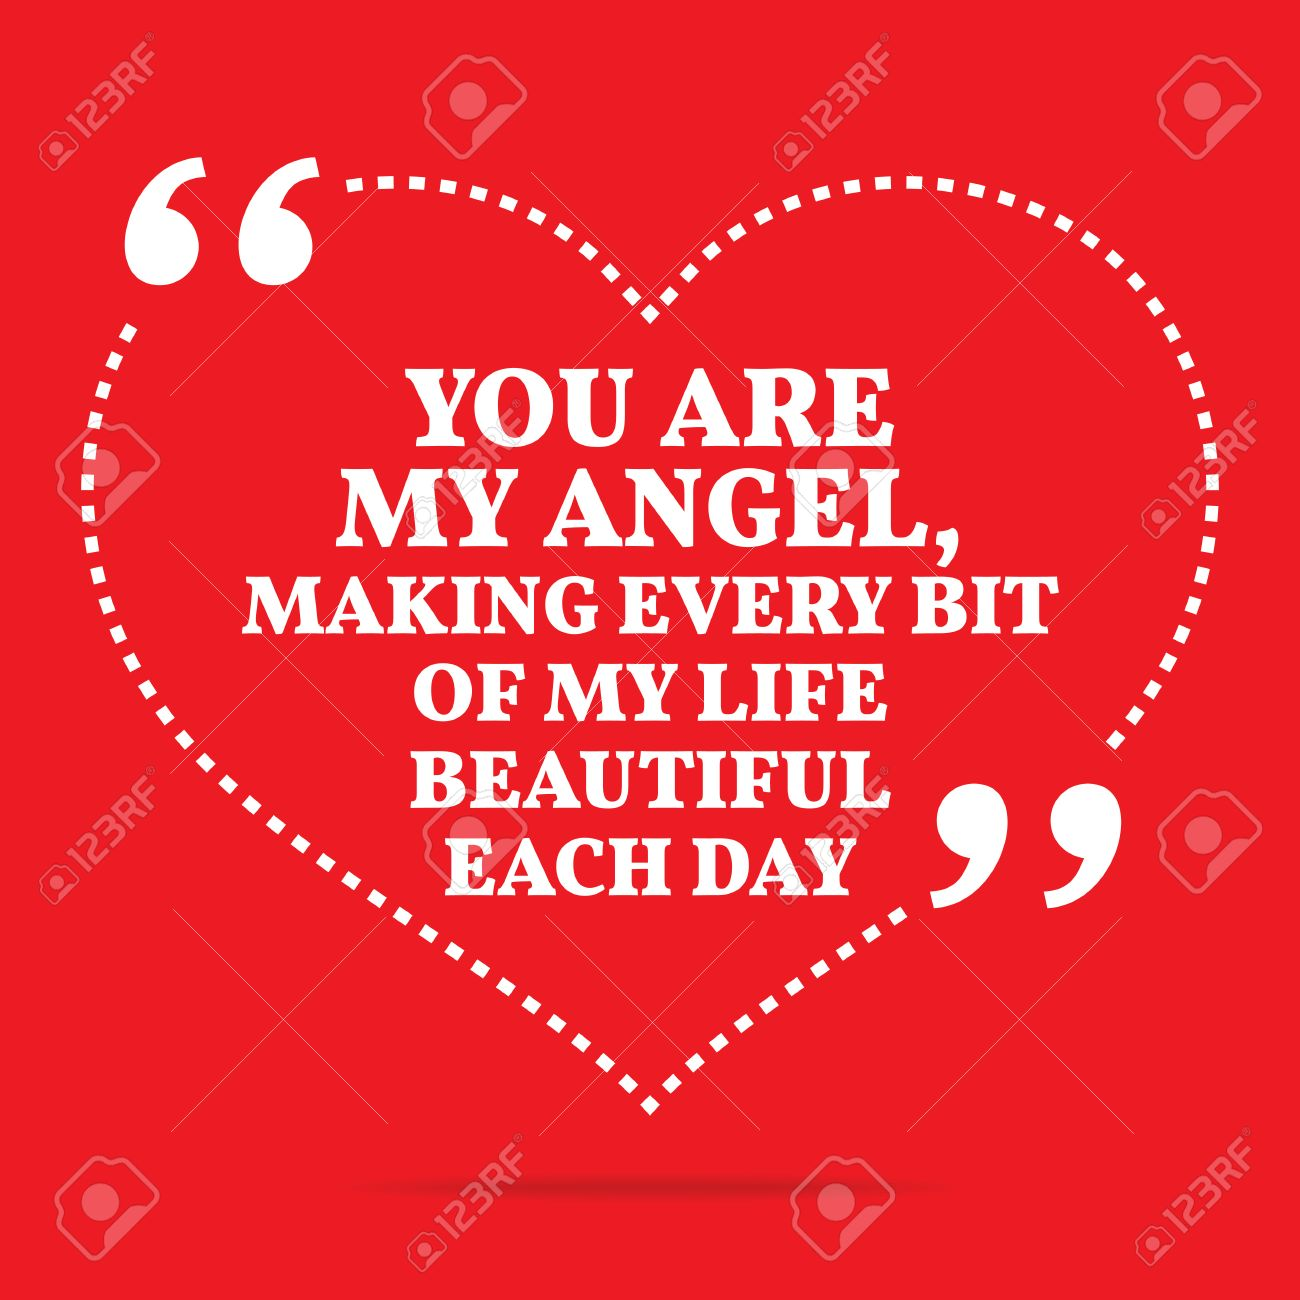 Inspirational Love Quote You Are My Angel Making Every Bit